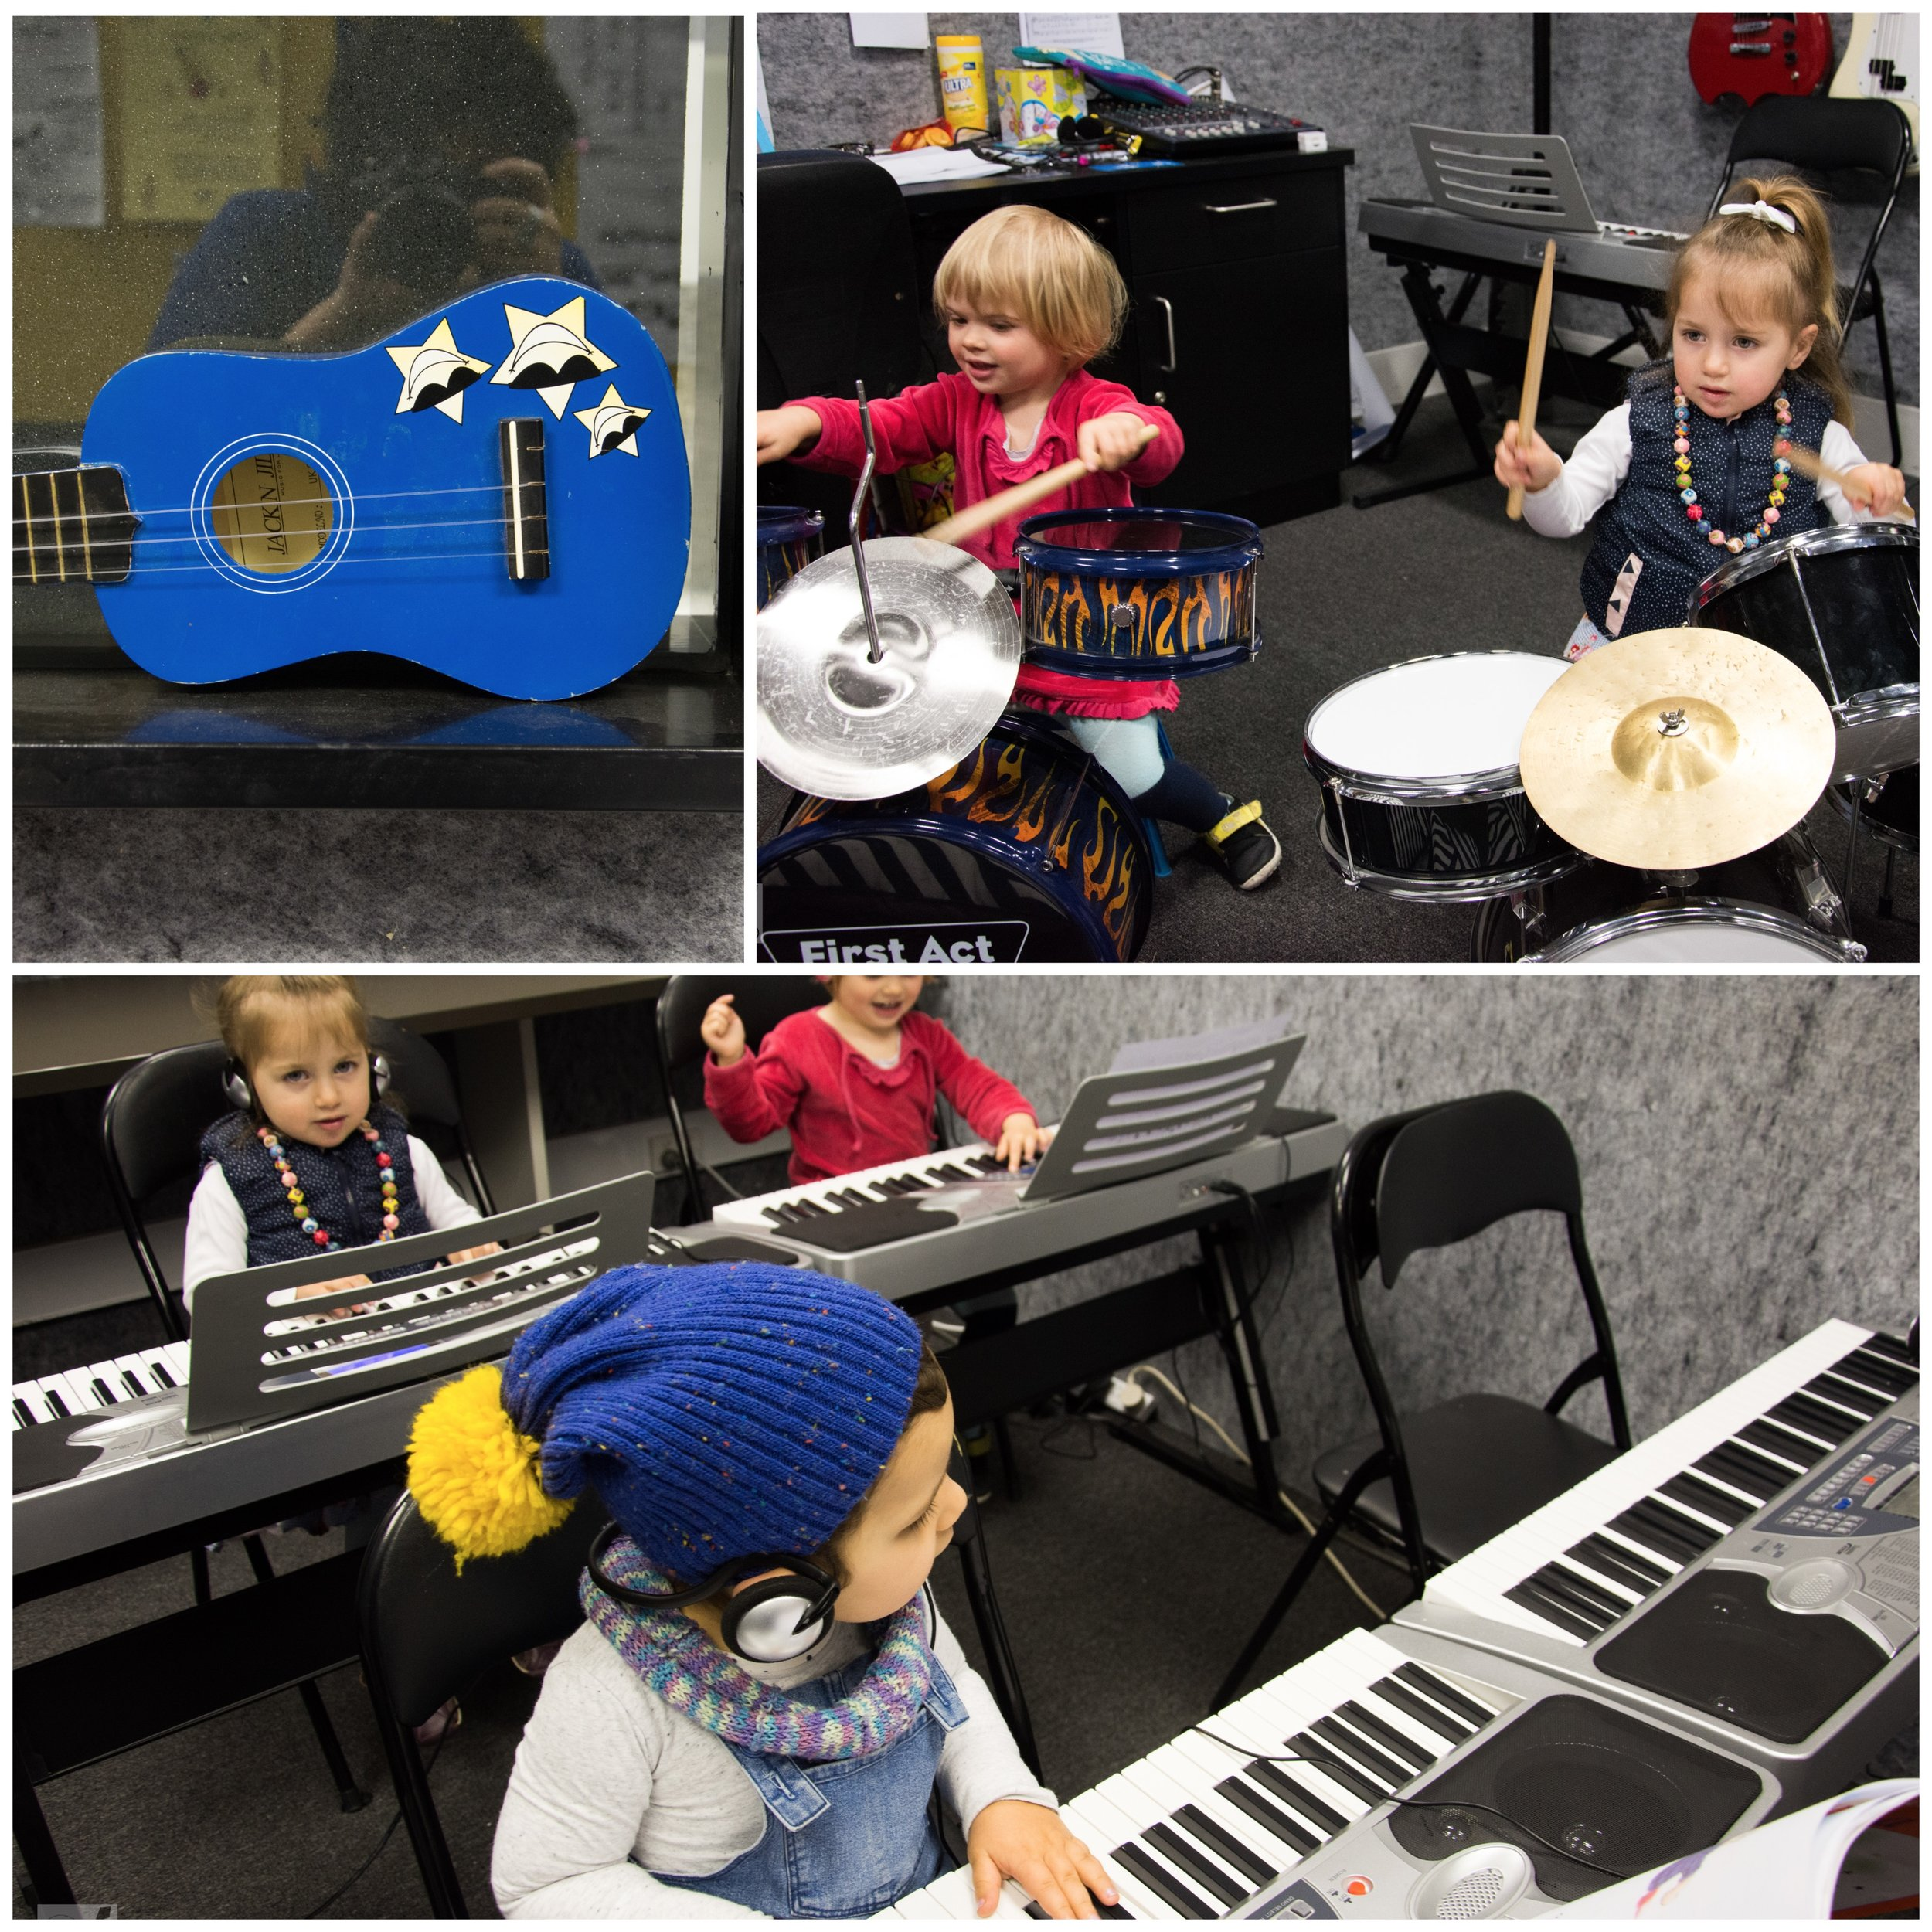 melbourne inner north performing arts academy, pascoe vale - mamma knows north